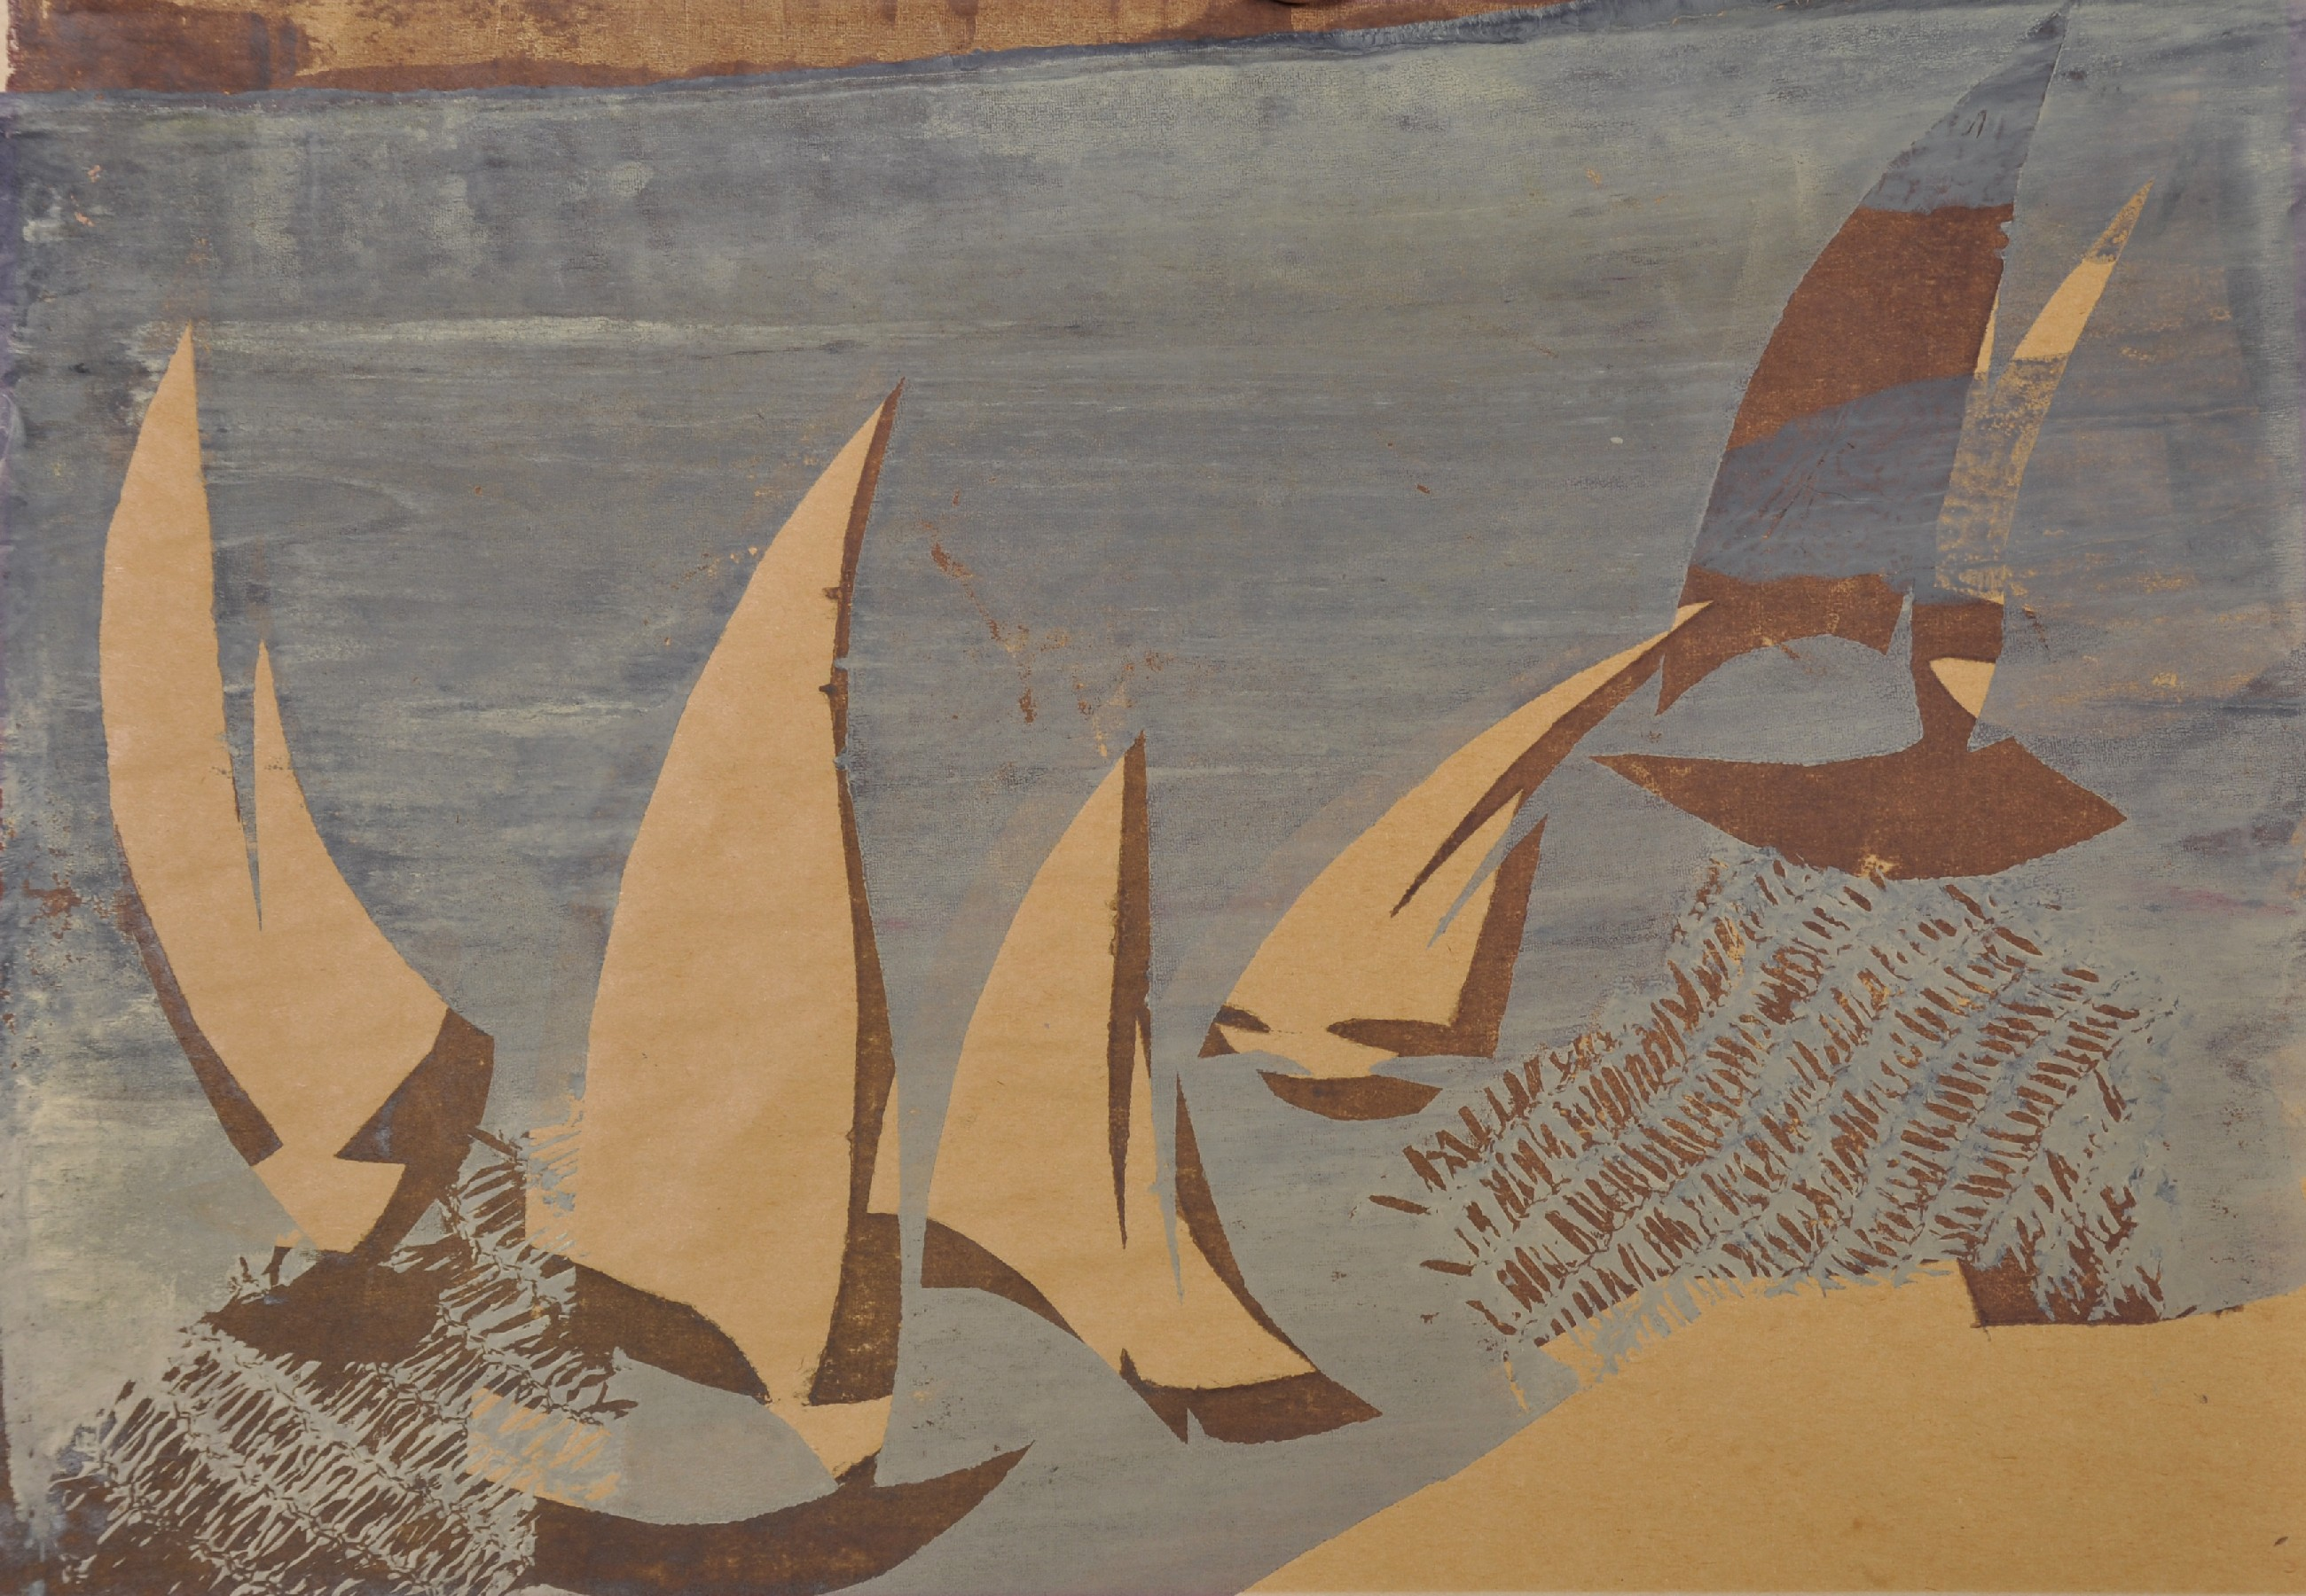 """Early 20th Century European School. Sailing Boats, Woodblock, Unframed, 12"""" x 16.75"""", and another by"""